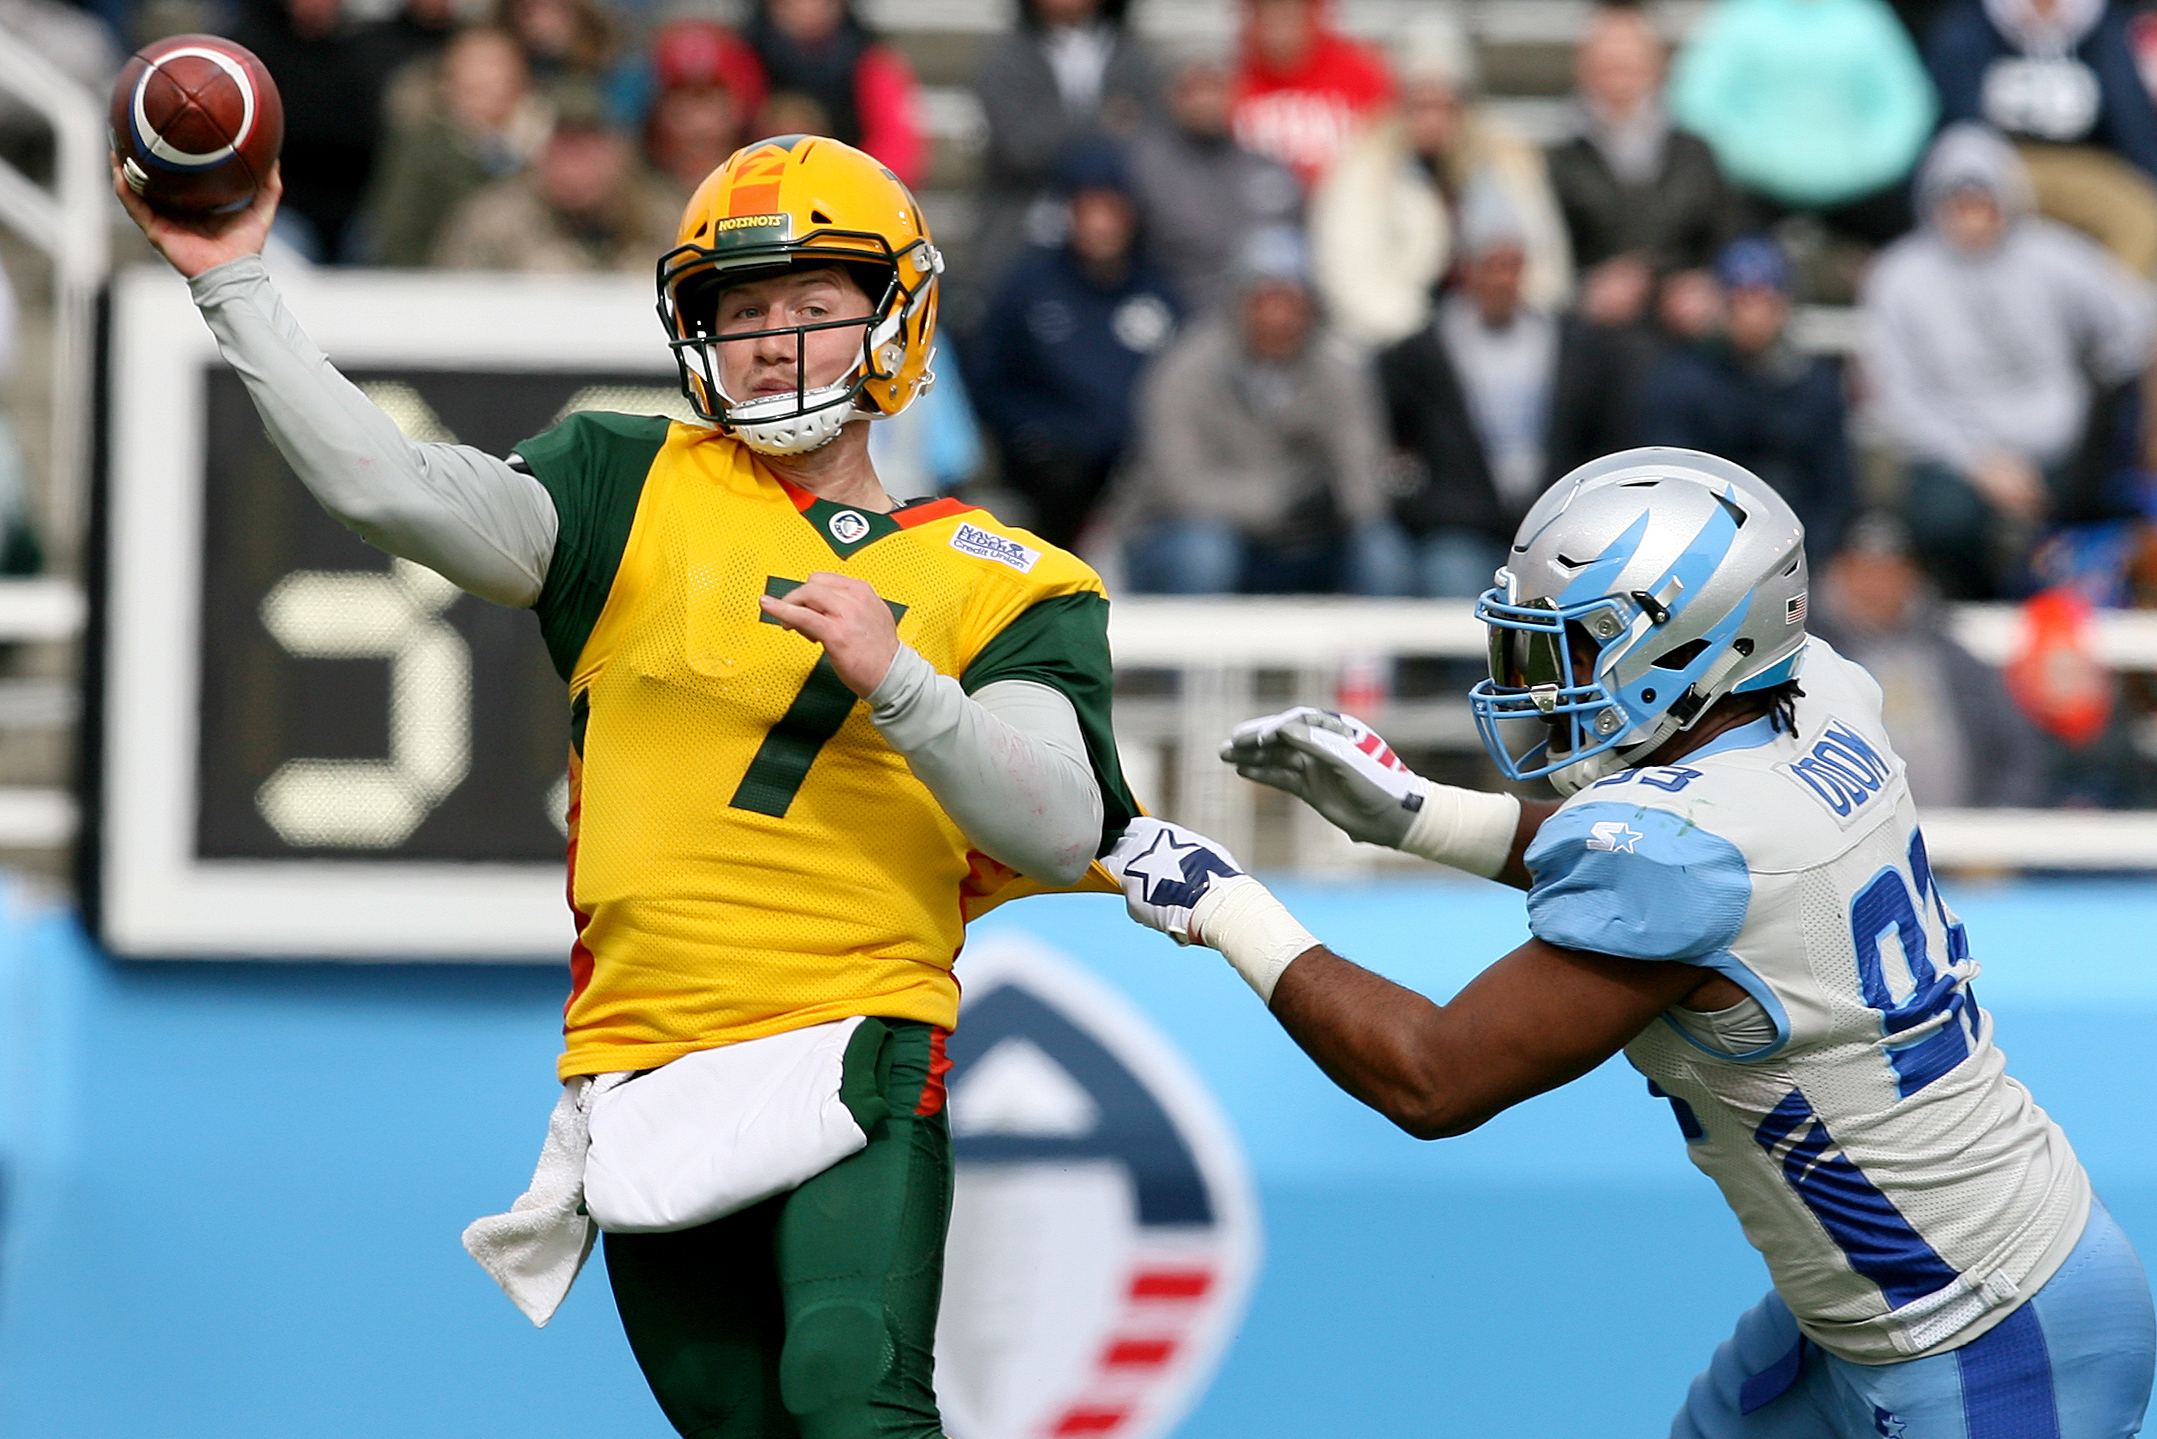 Who Is John Wolford Through 3 Weeks Arizona Qb Leads Aaf In Passing Tds Bleacher Report Latest News Videos And Highlights